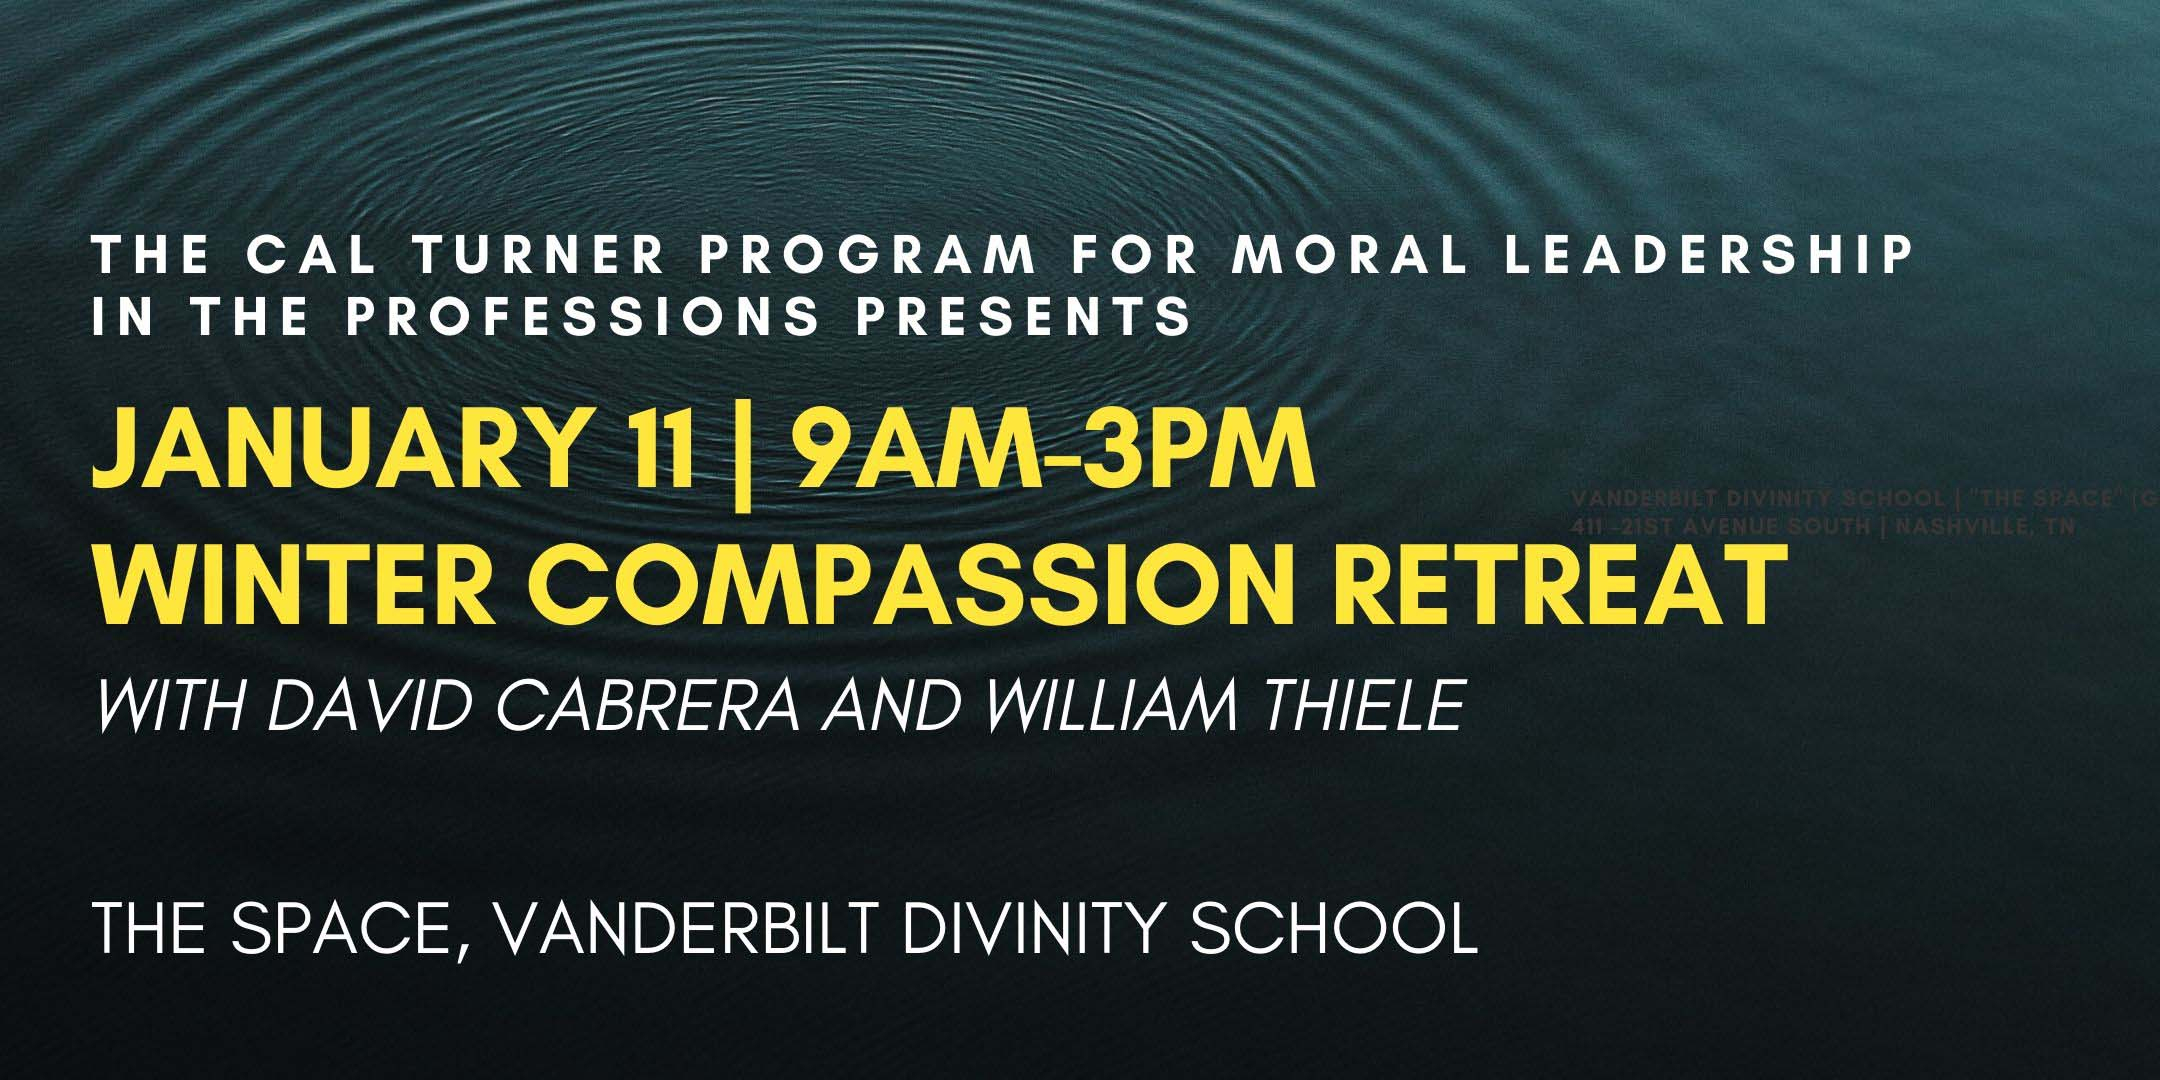 CTP Winter Compassion Retreat